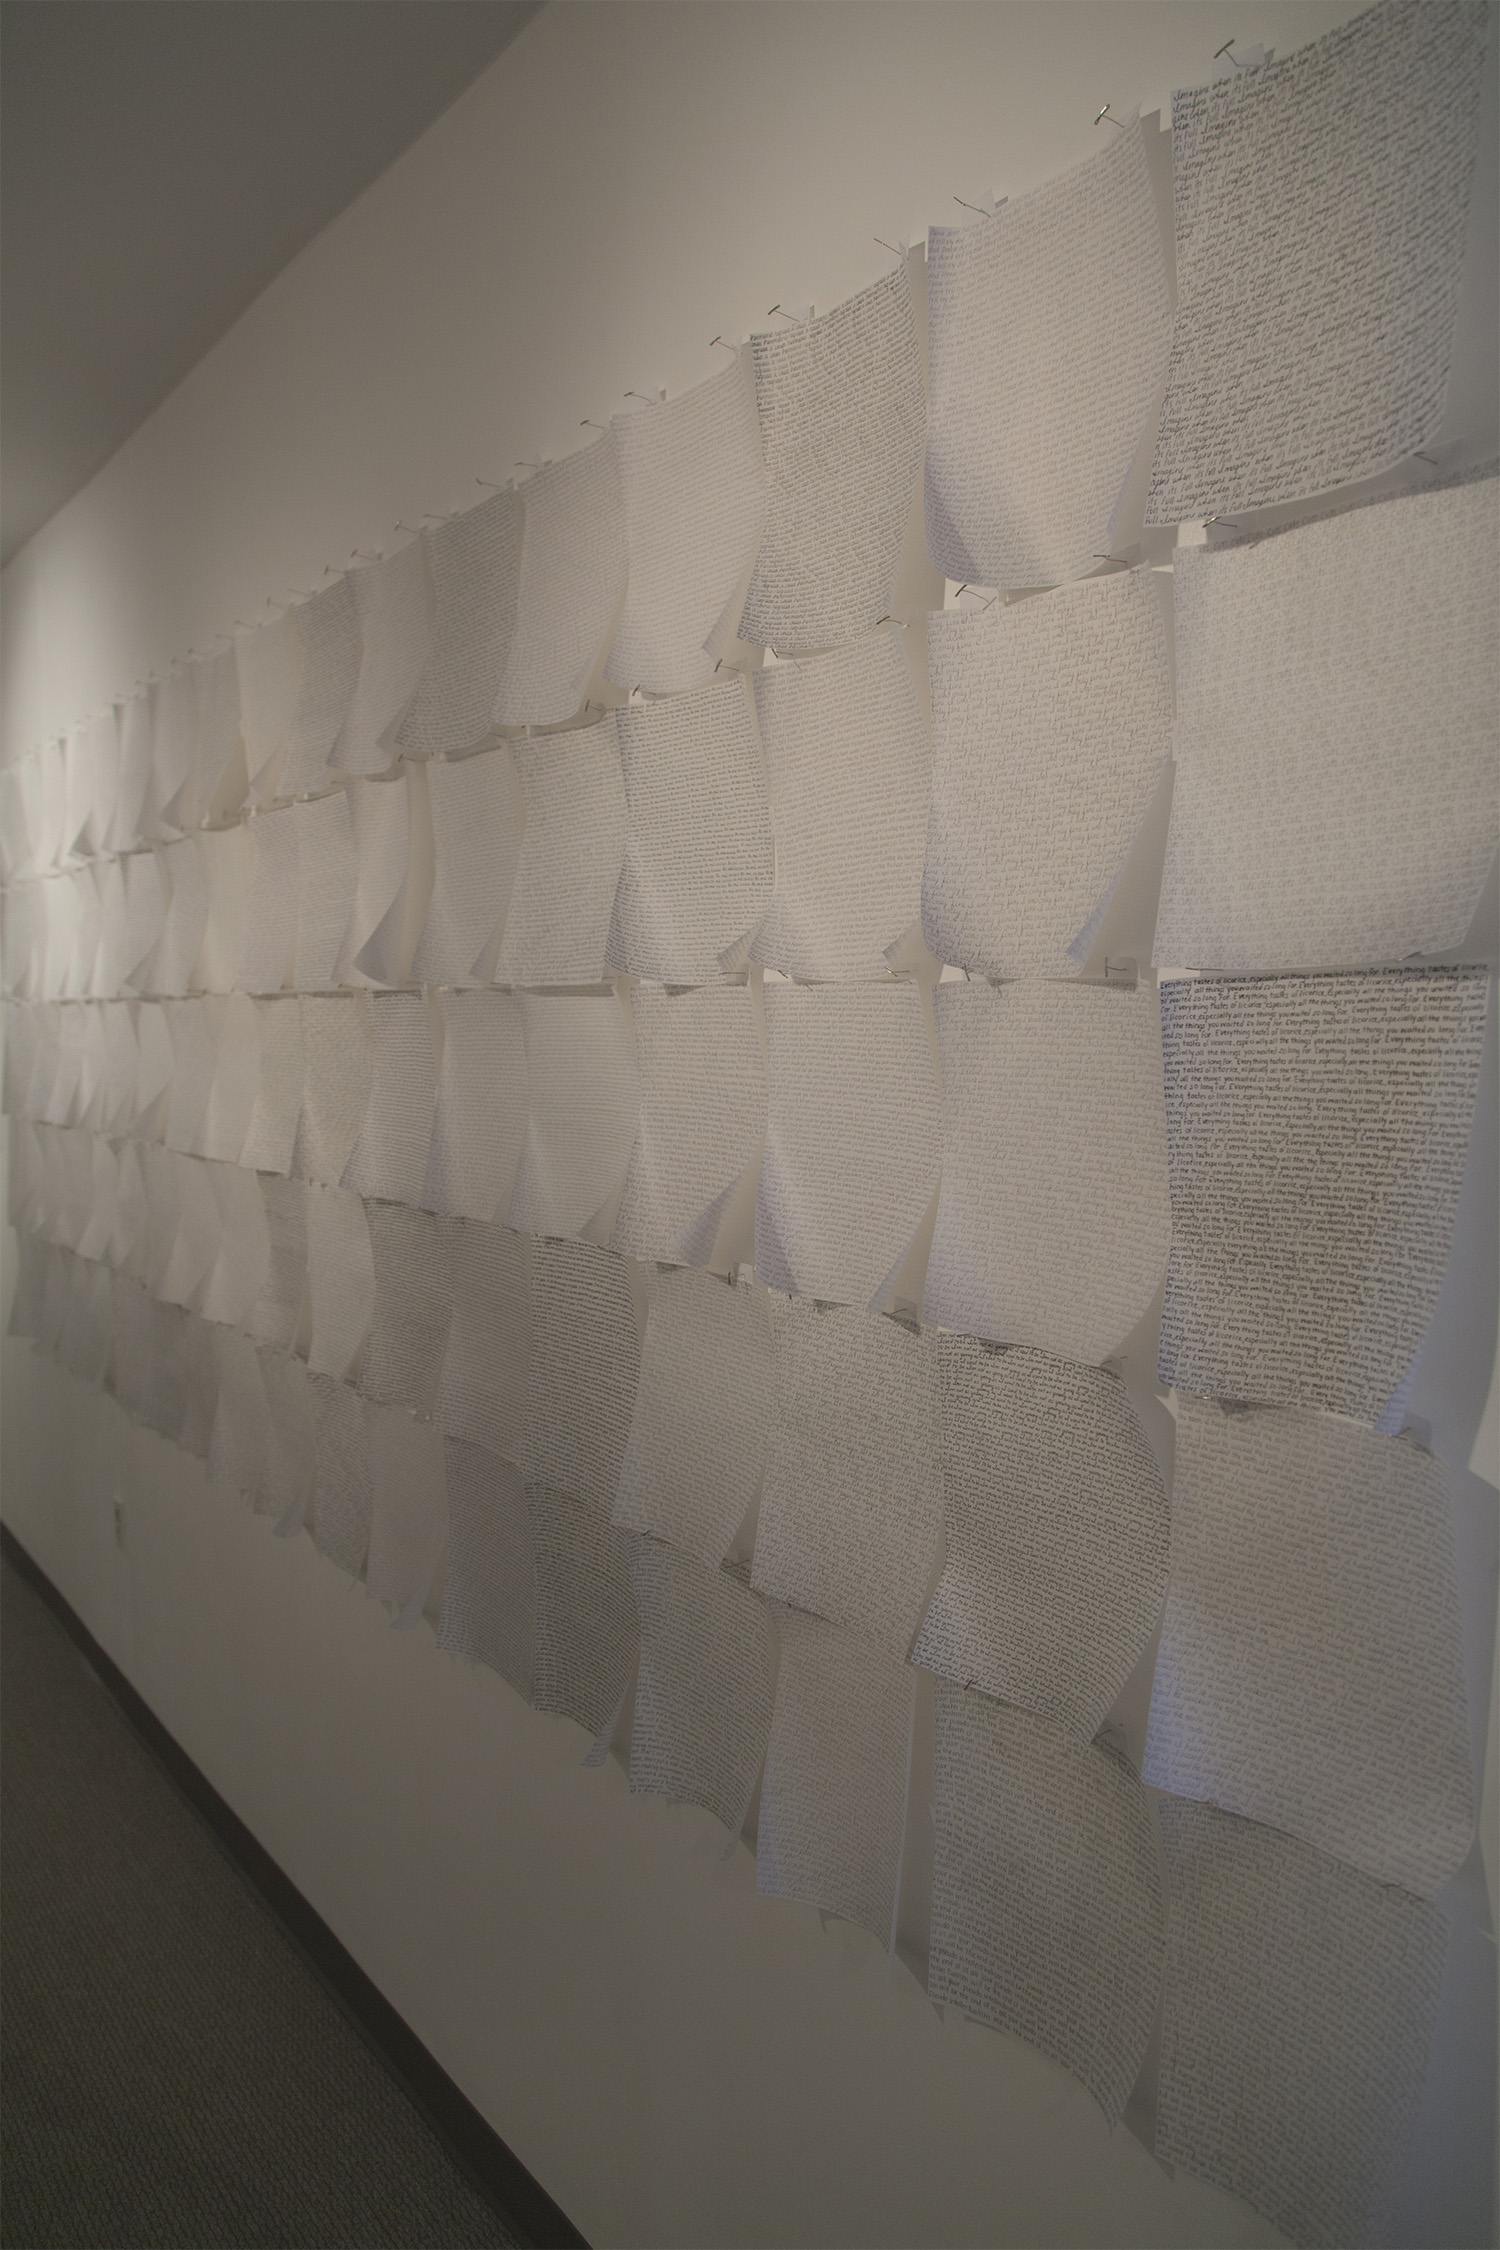 Krystal Ramirez Untitled 2013, onion skin, typewriting paper, ink, pencil, 10′ x 5′. From the I'm Sorry We Lied exhibition.